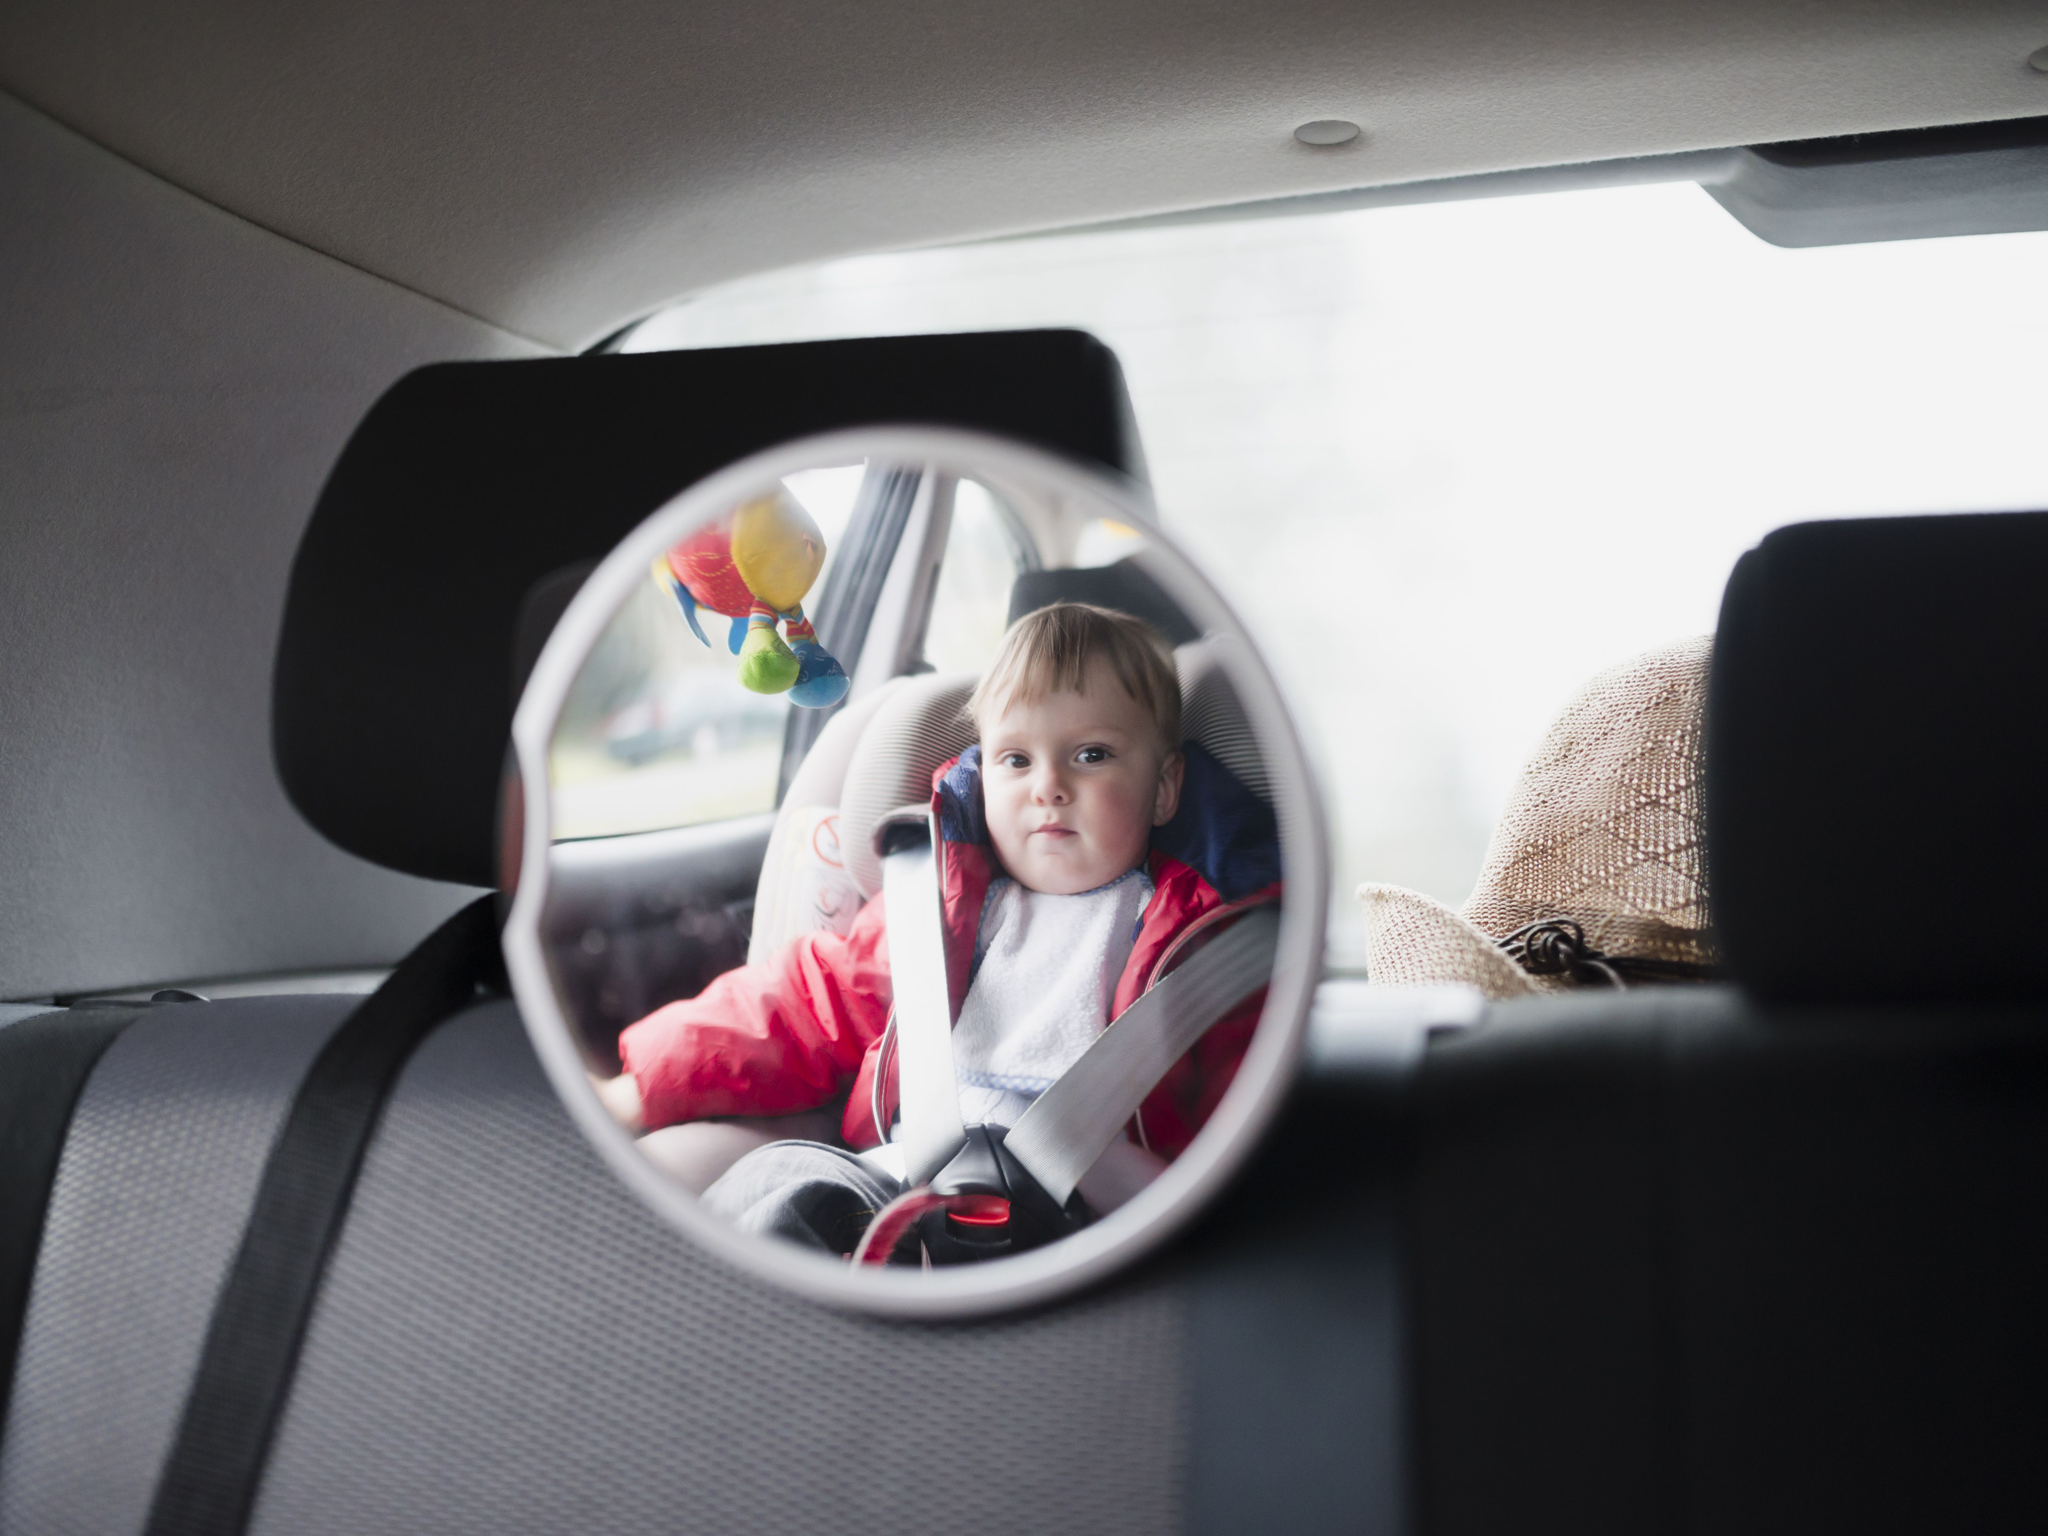 What are the advantages of orthopedic child seats for the child?